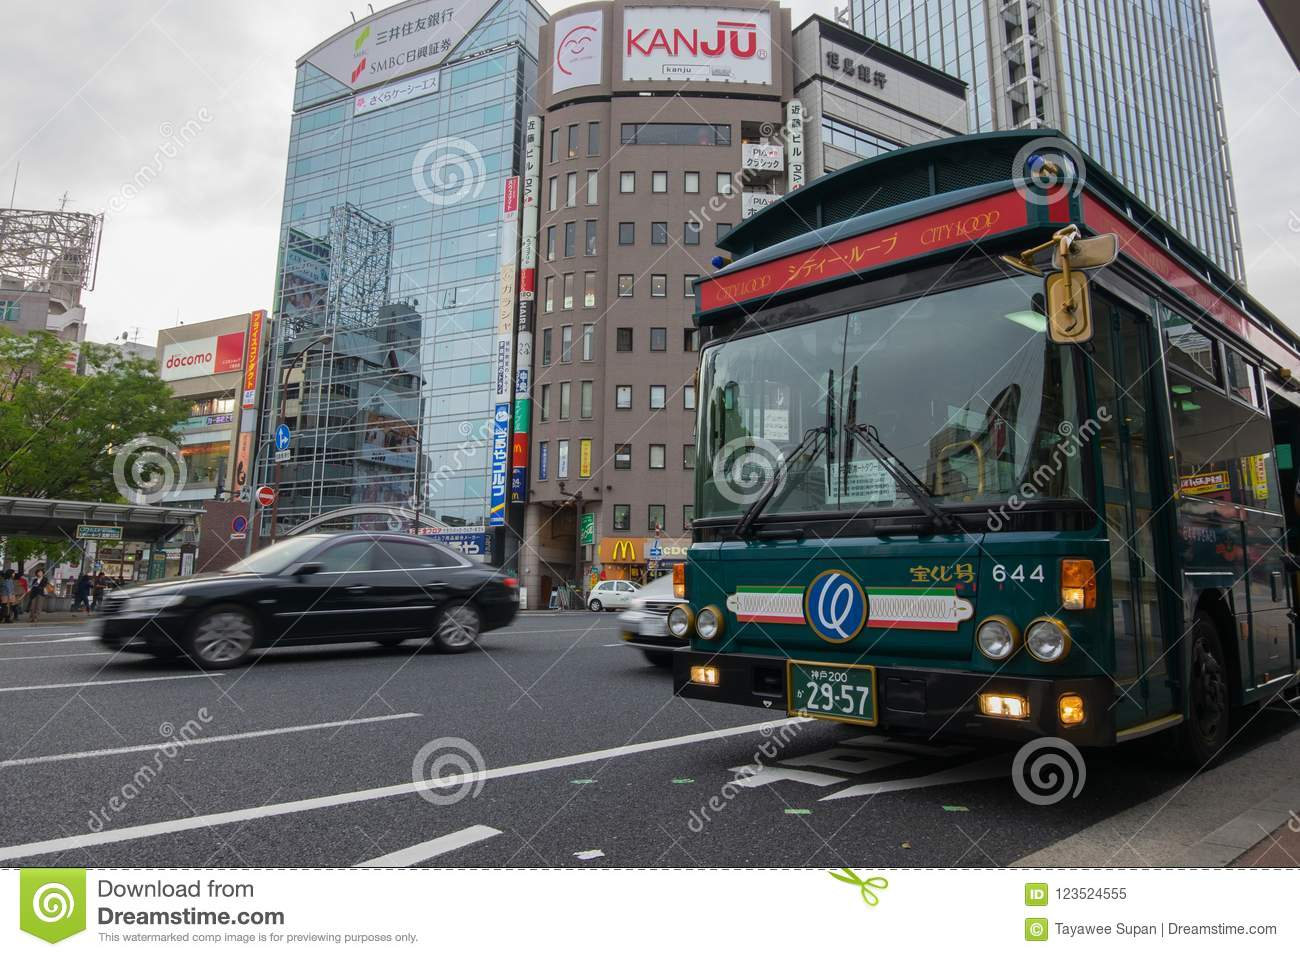 city loop bus is a popular bus route for tourist. in kobe, japan